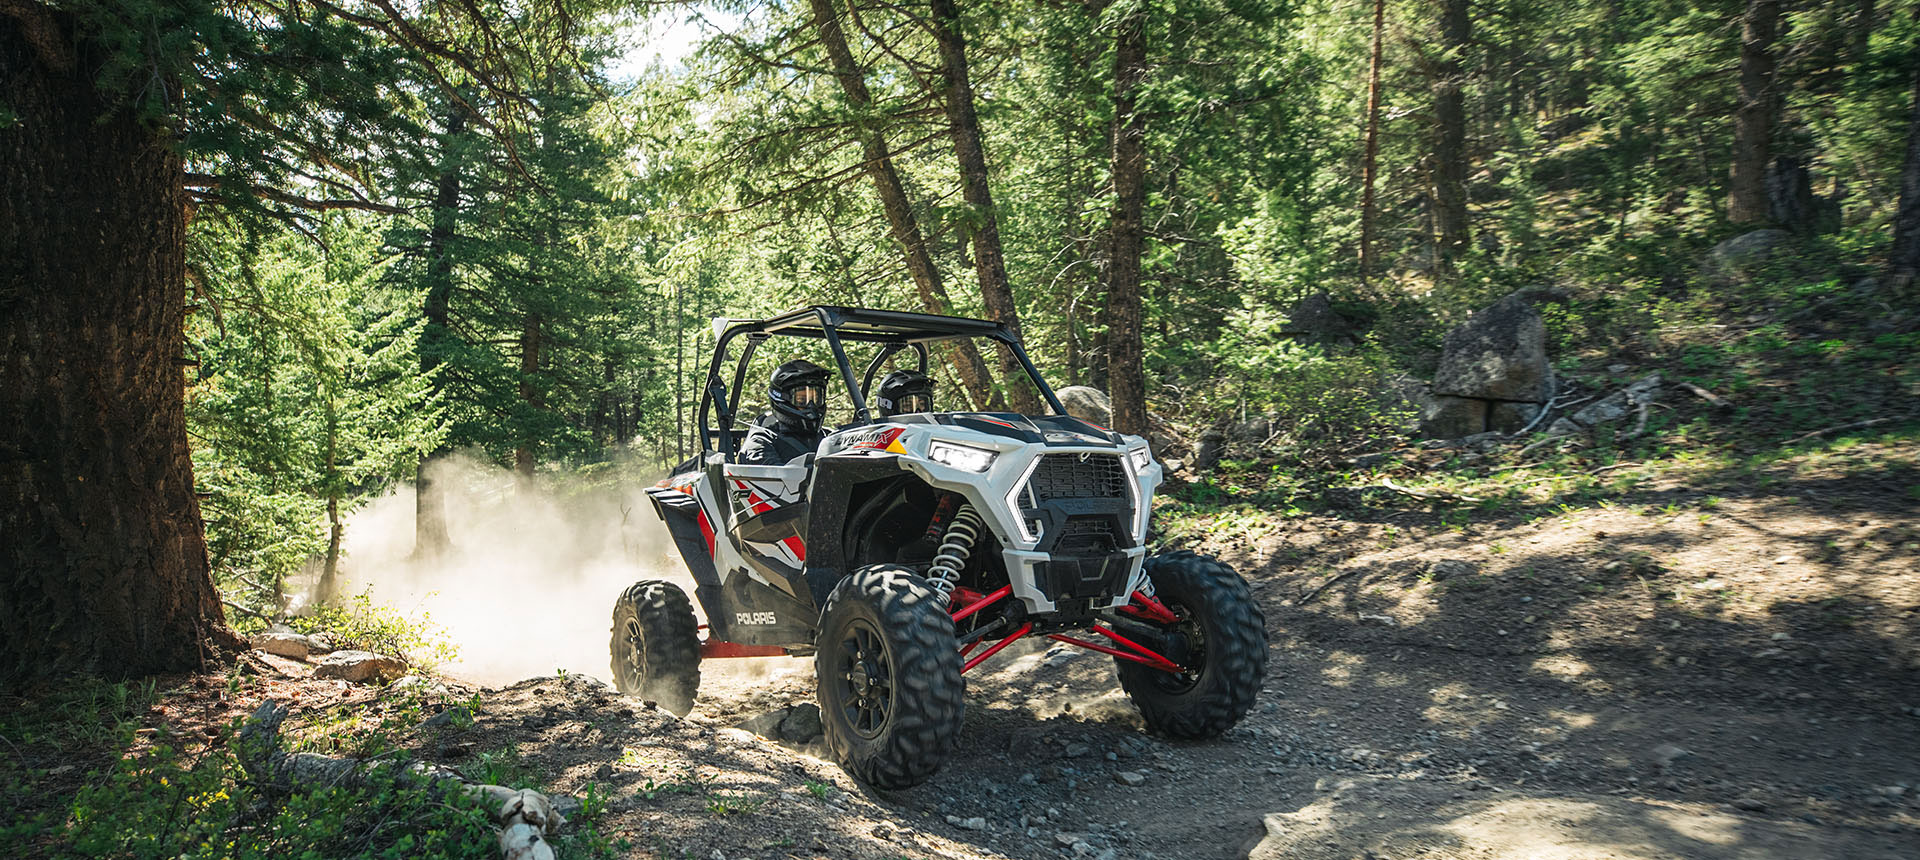 2019 Polaris RZR XP 1000 in Katy, Texas - Photo 9